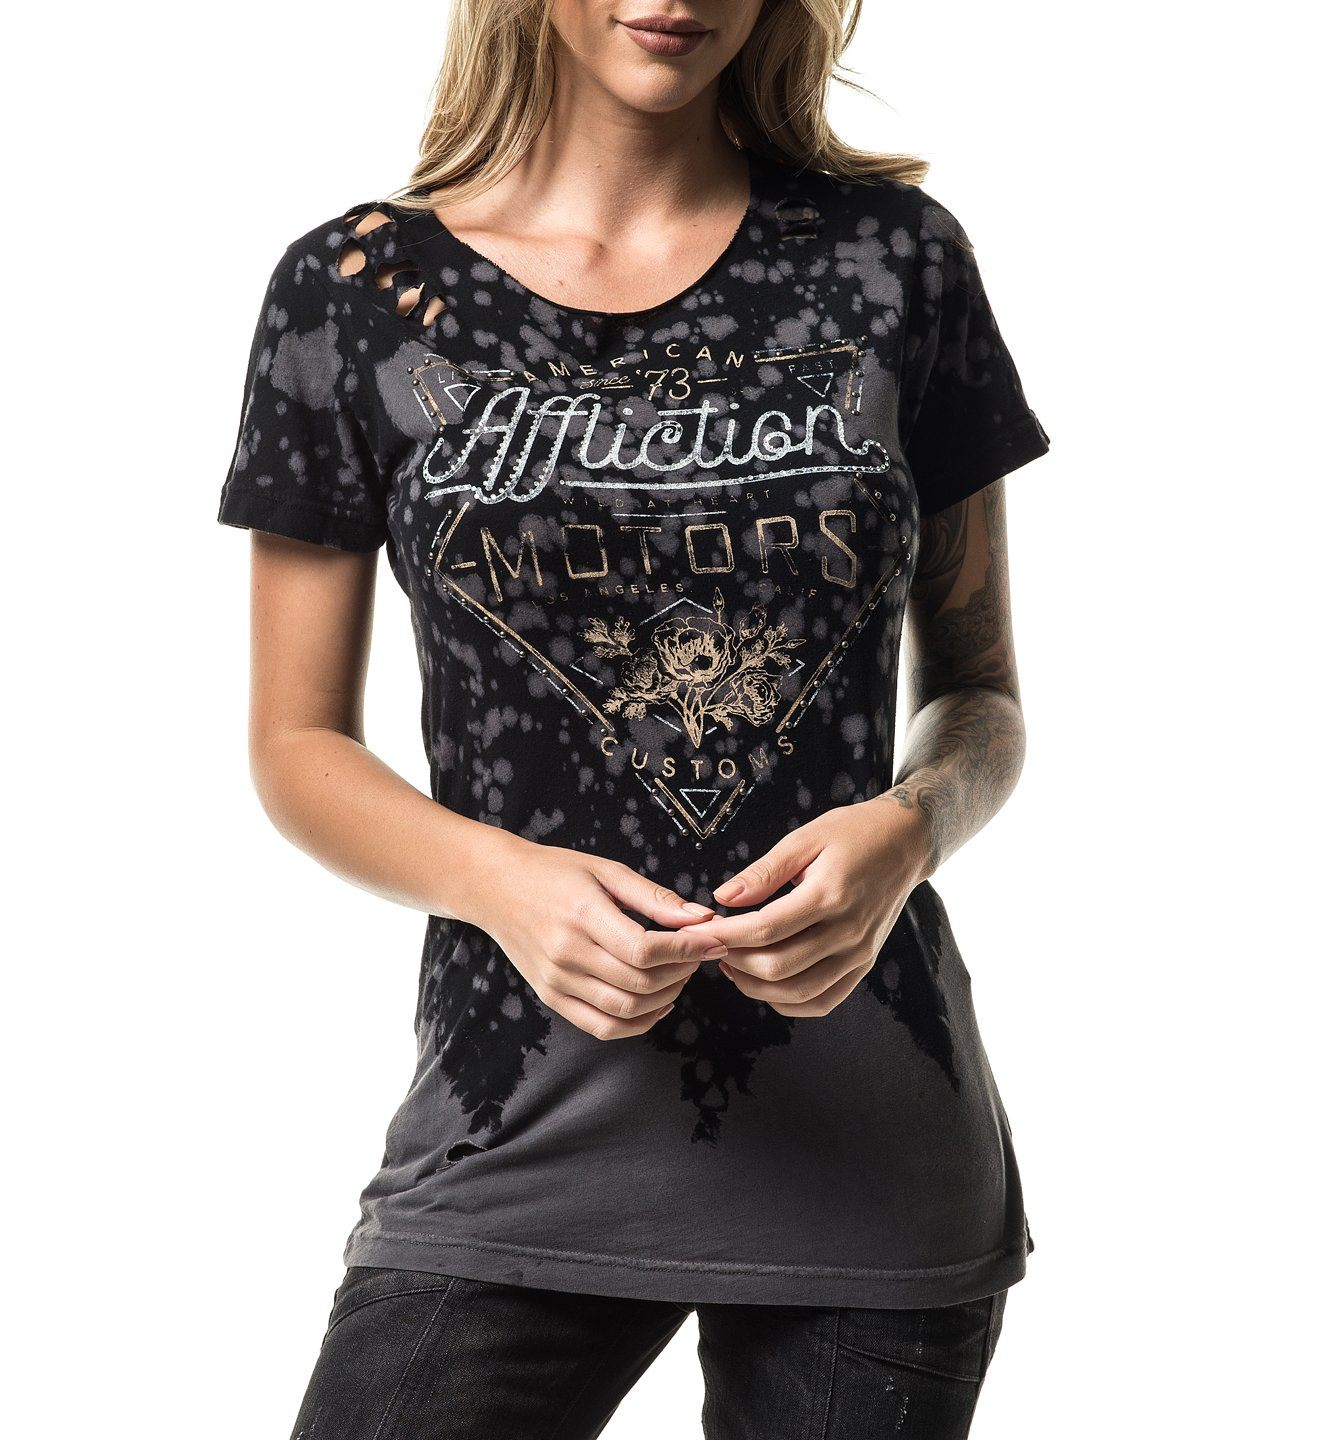 Ac Cali Fresh - Womens Short Sleeve Tees - Affliction Clothing